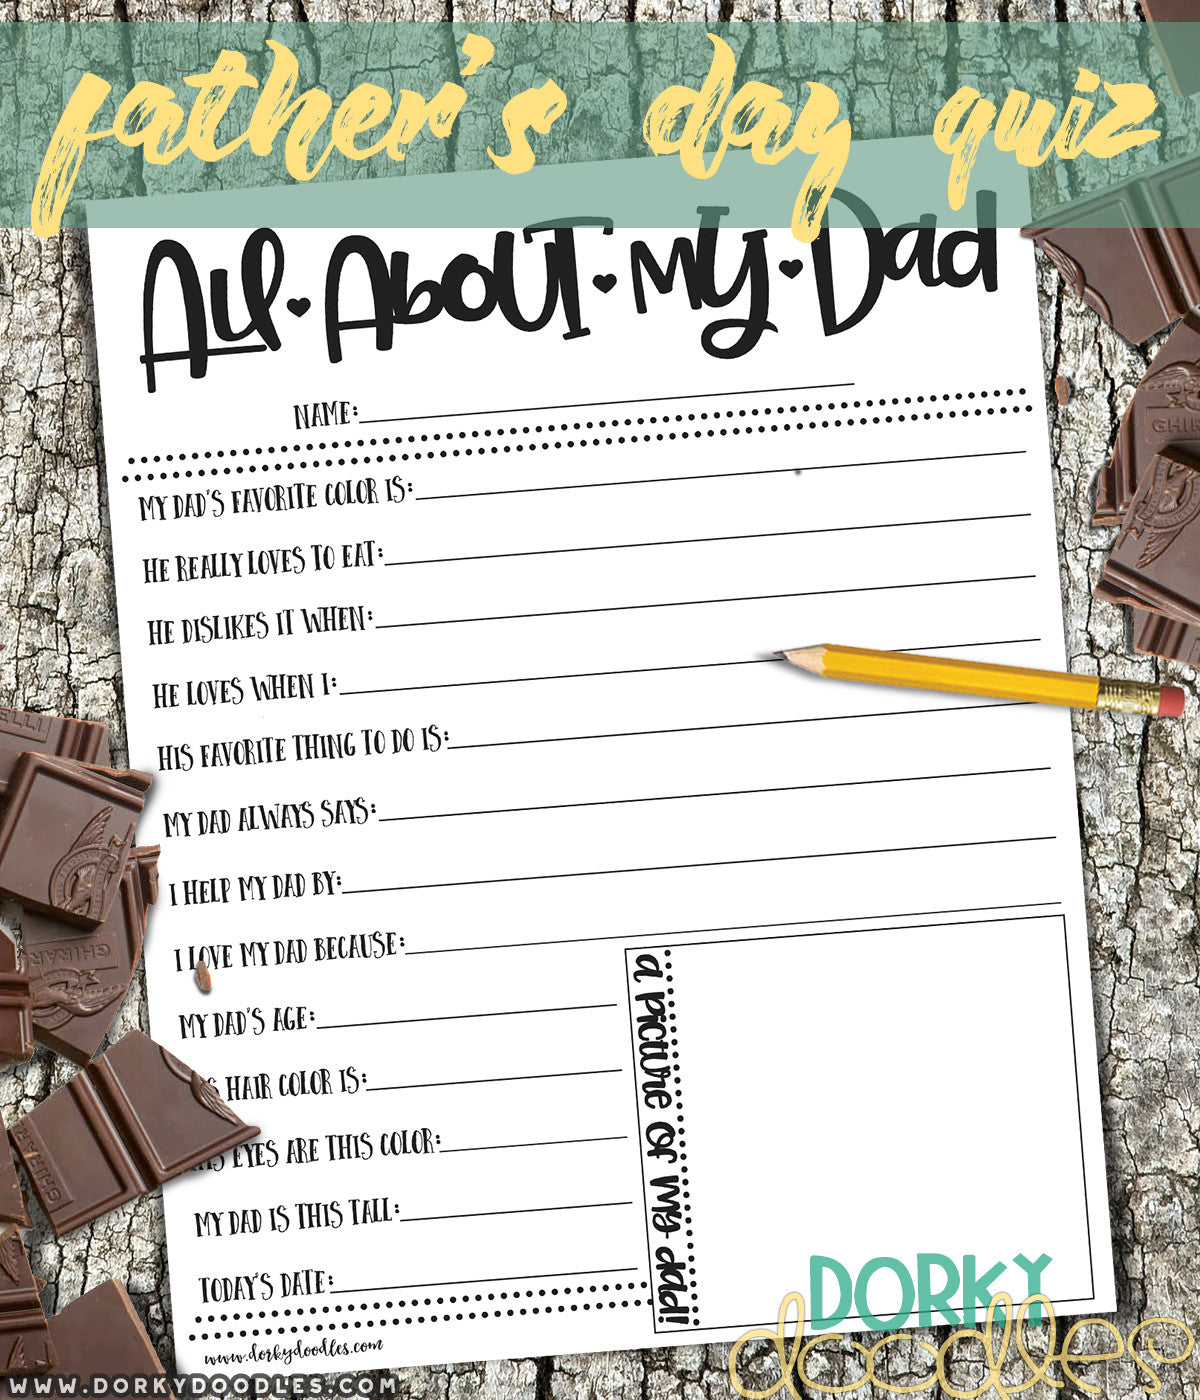 all about my dad printable quiz